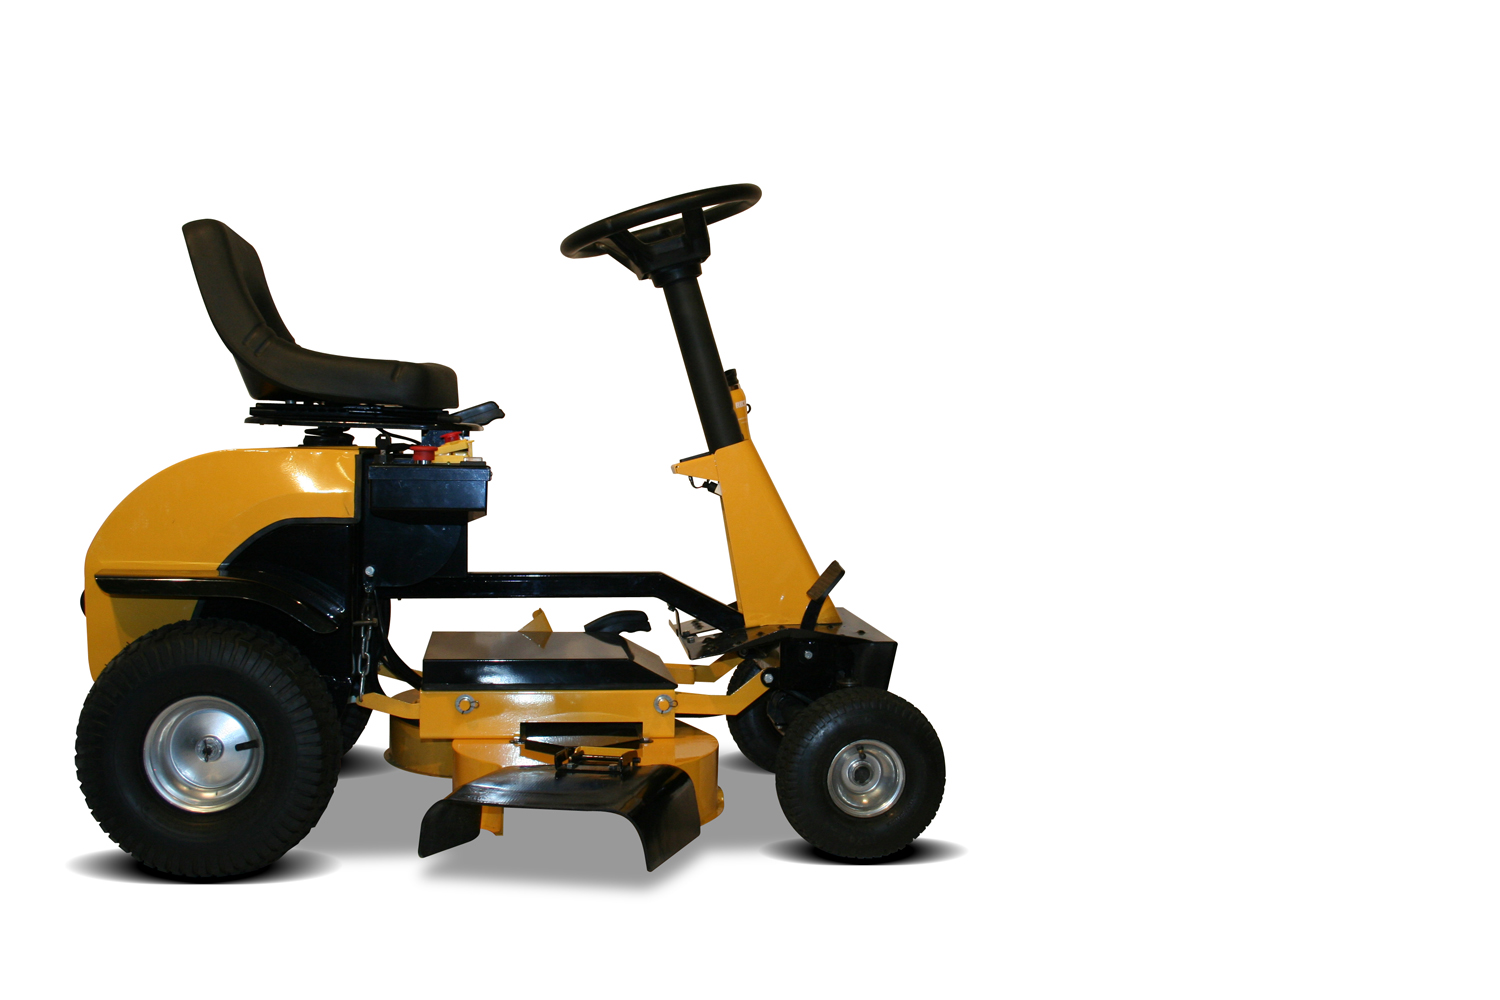 The New Recharge Mower G2 Electric Rechargeable Riding